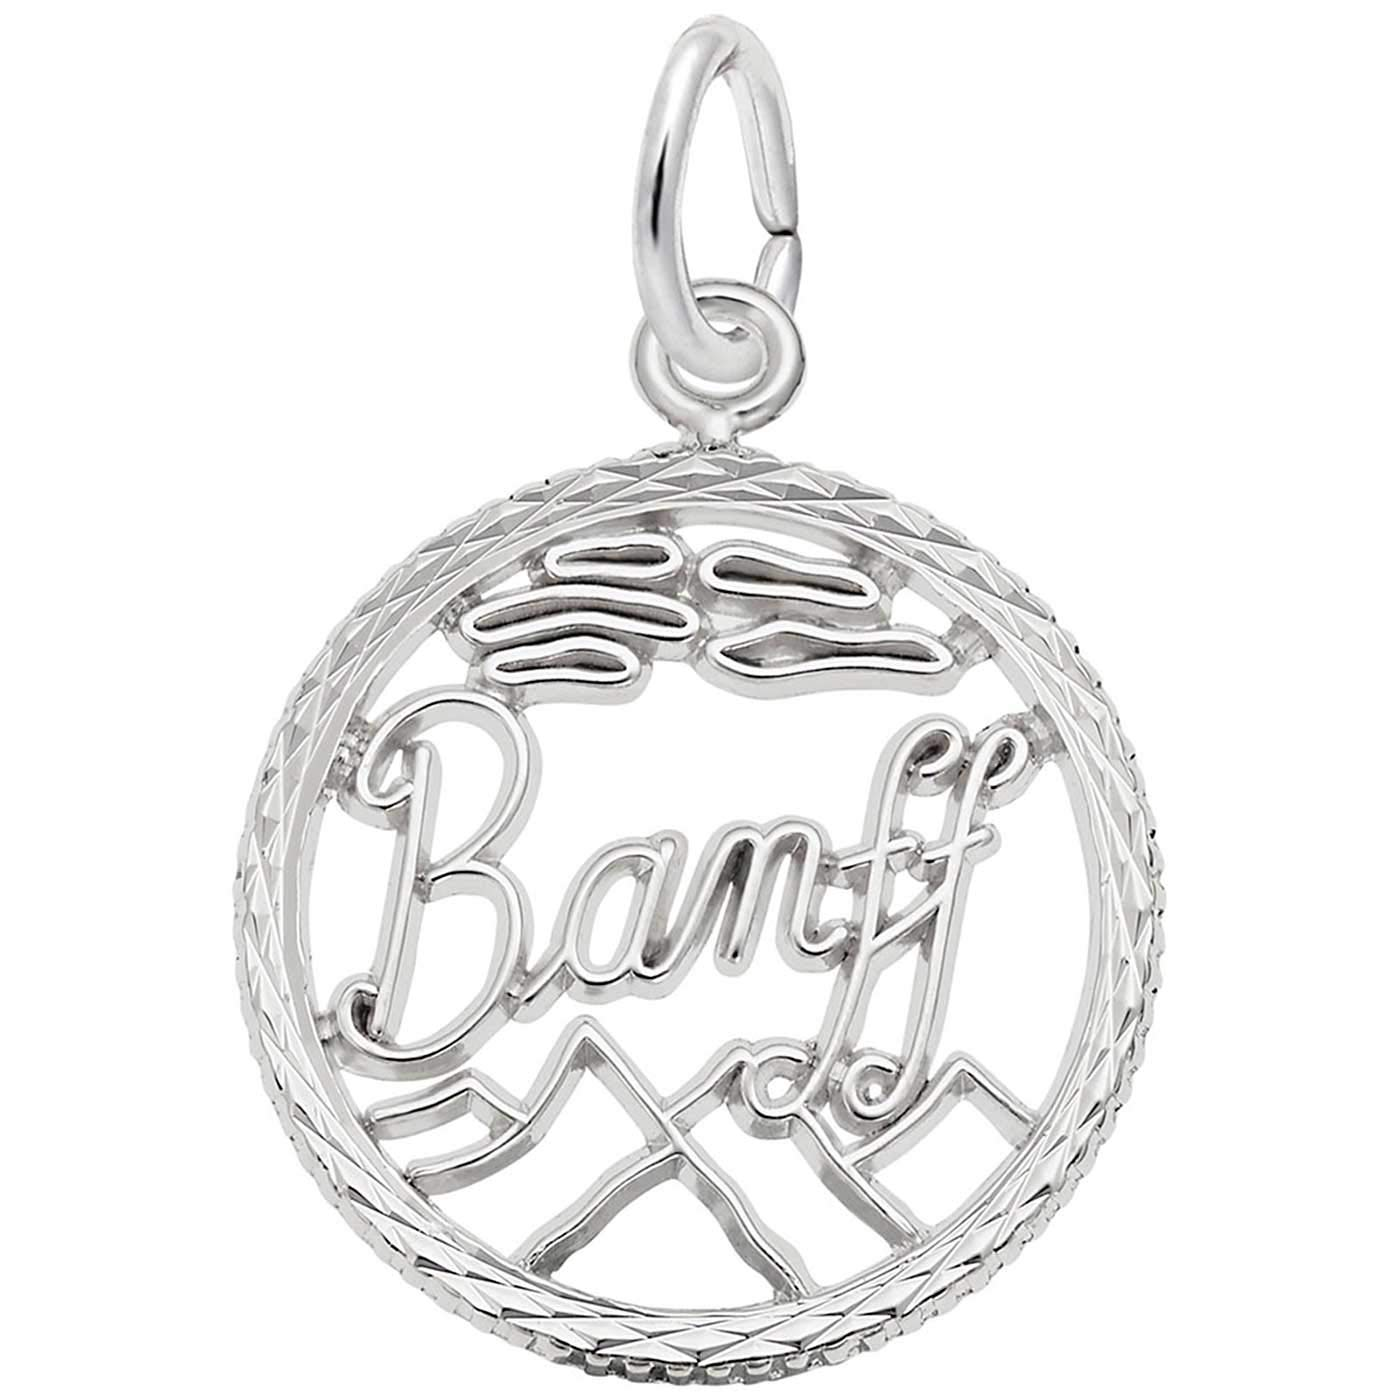 Rembrandt Charms Banff Charm, Sterling Silver